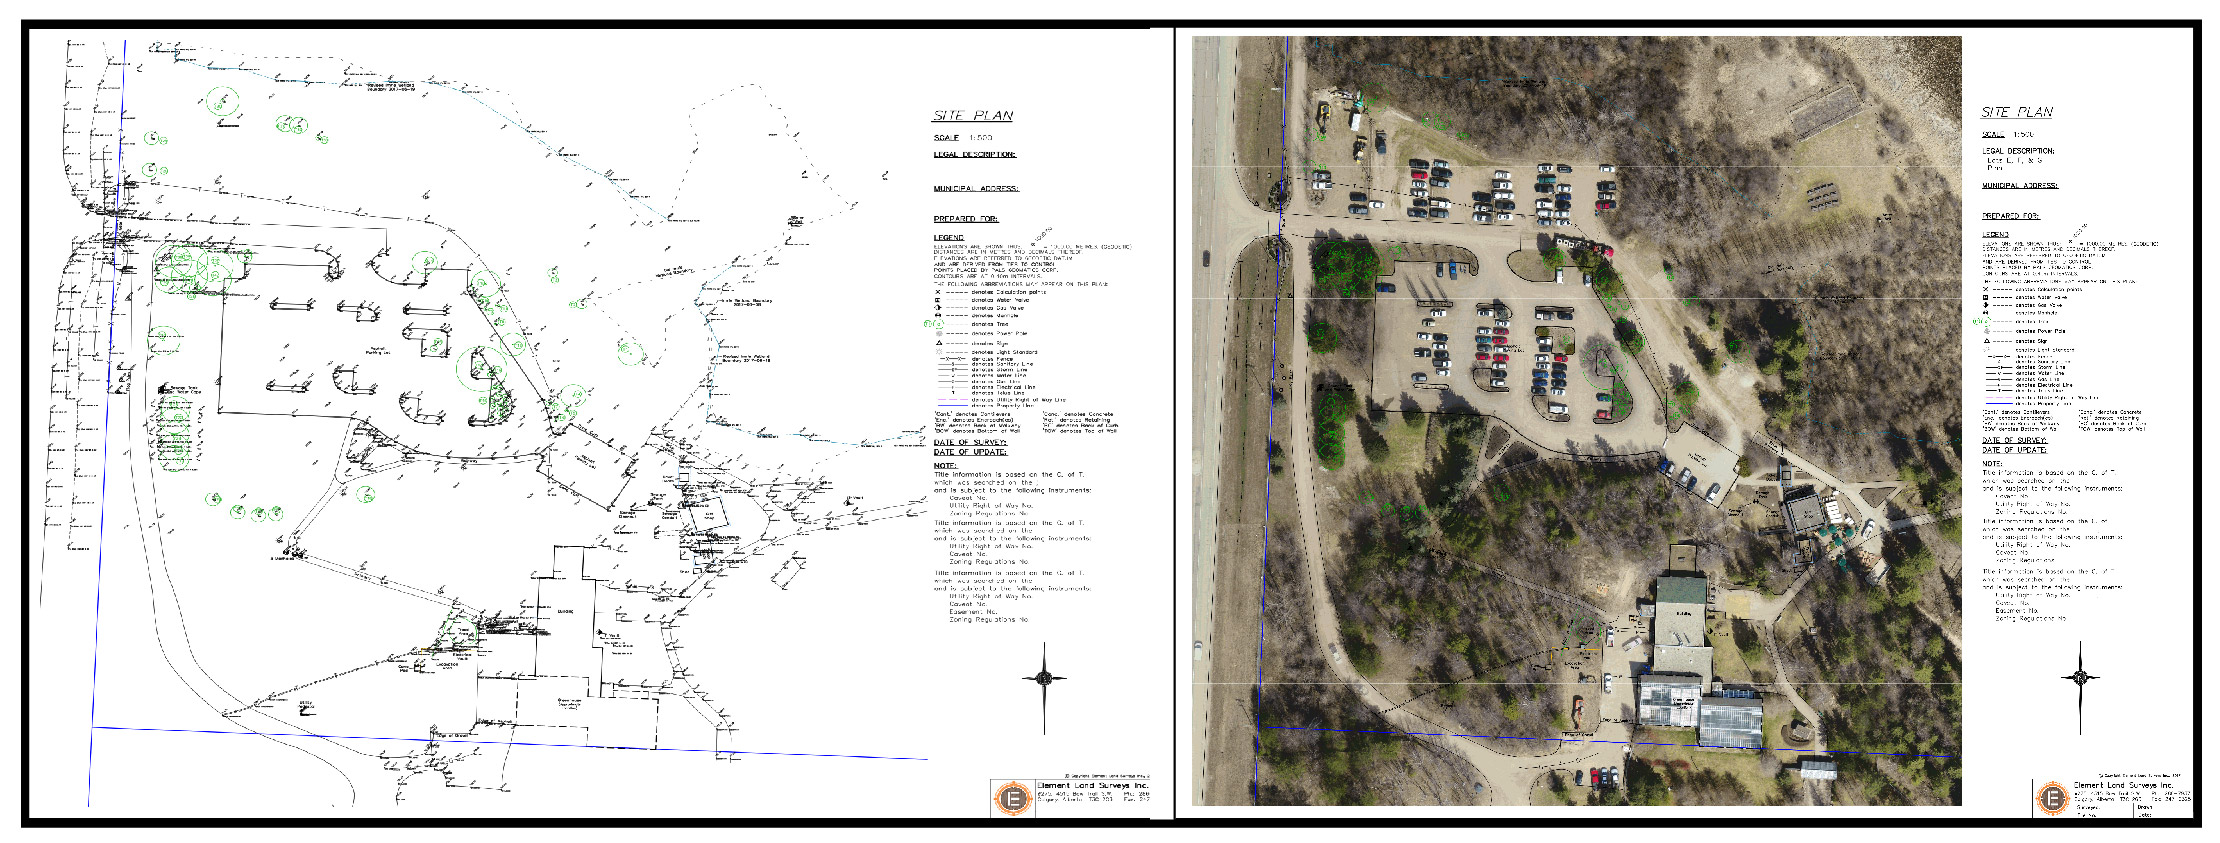 Survey Site Plan Is bare on the left and filled it, making it easy to understand with Skymatics drone Imagery